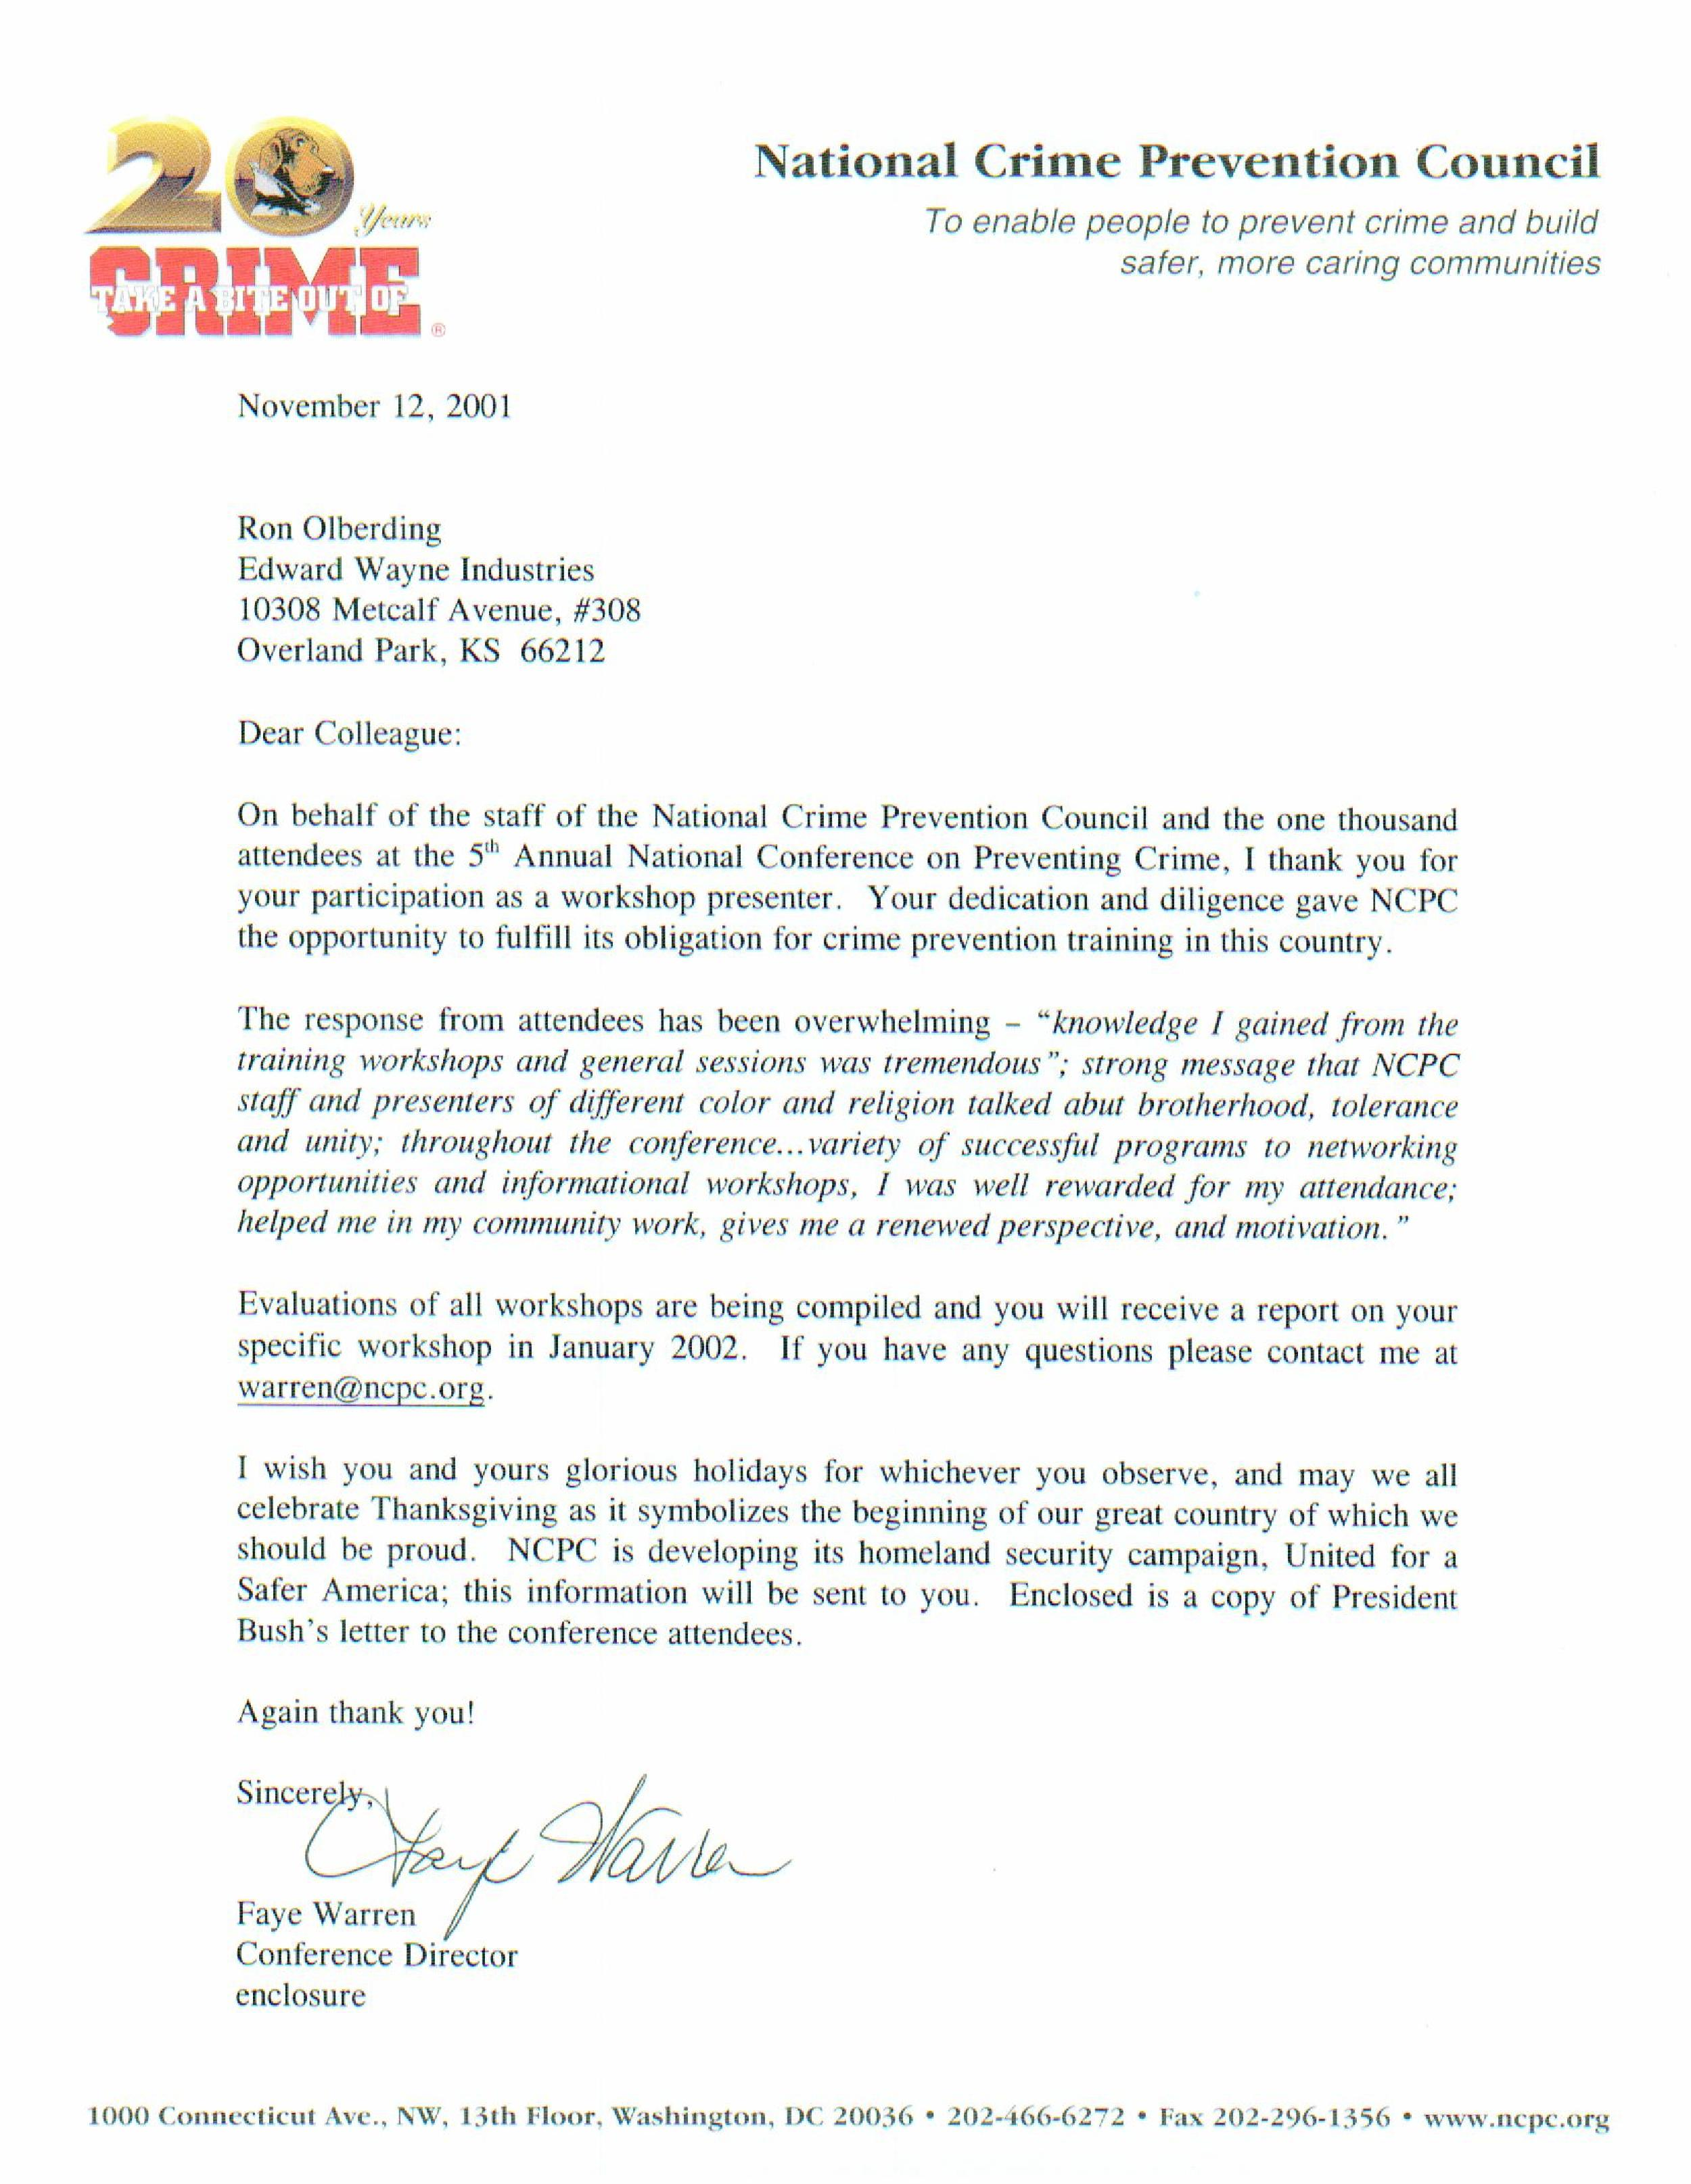 Physical Home Defense Letter from National Crime Prevention Council